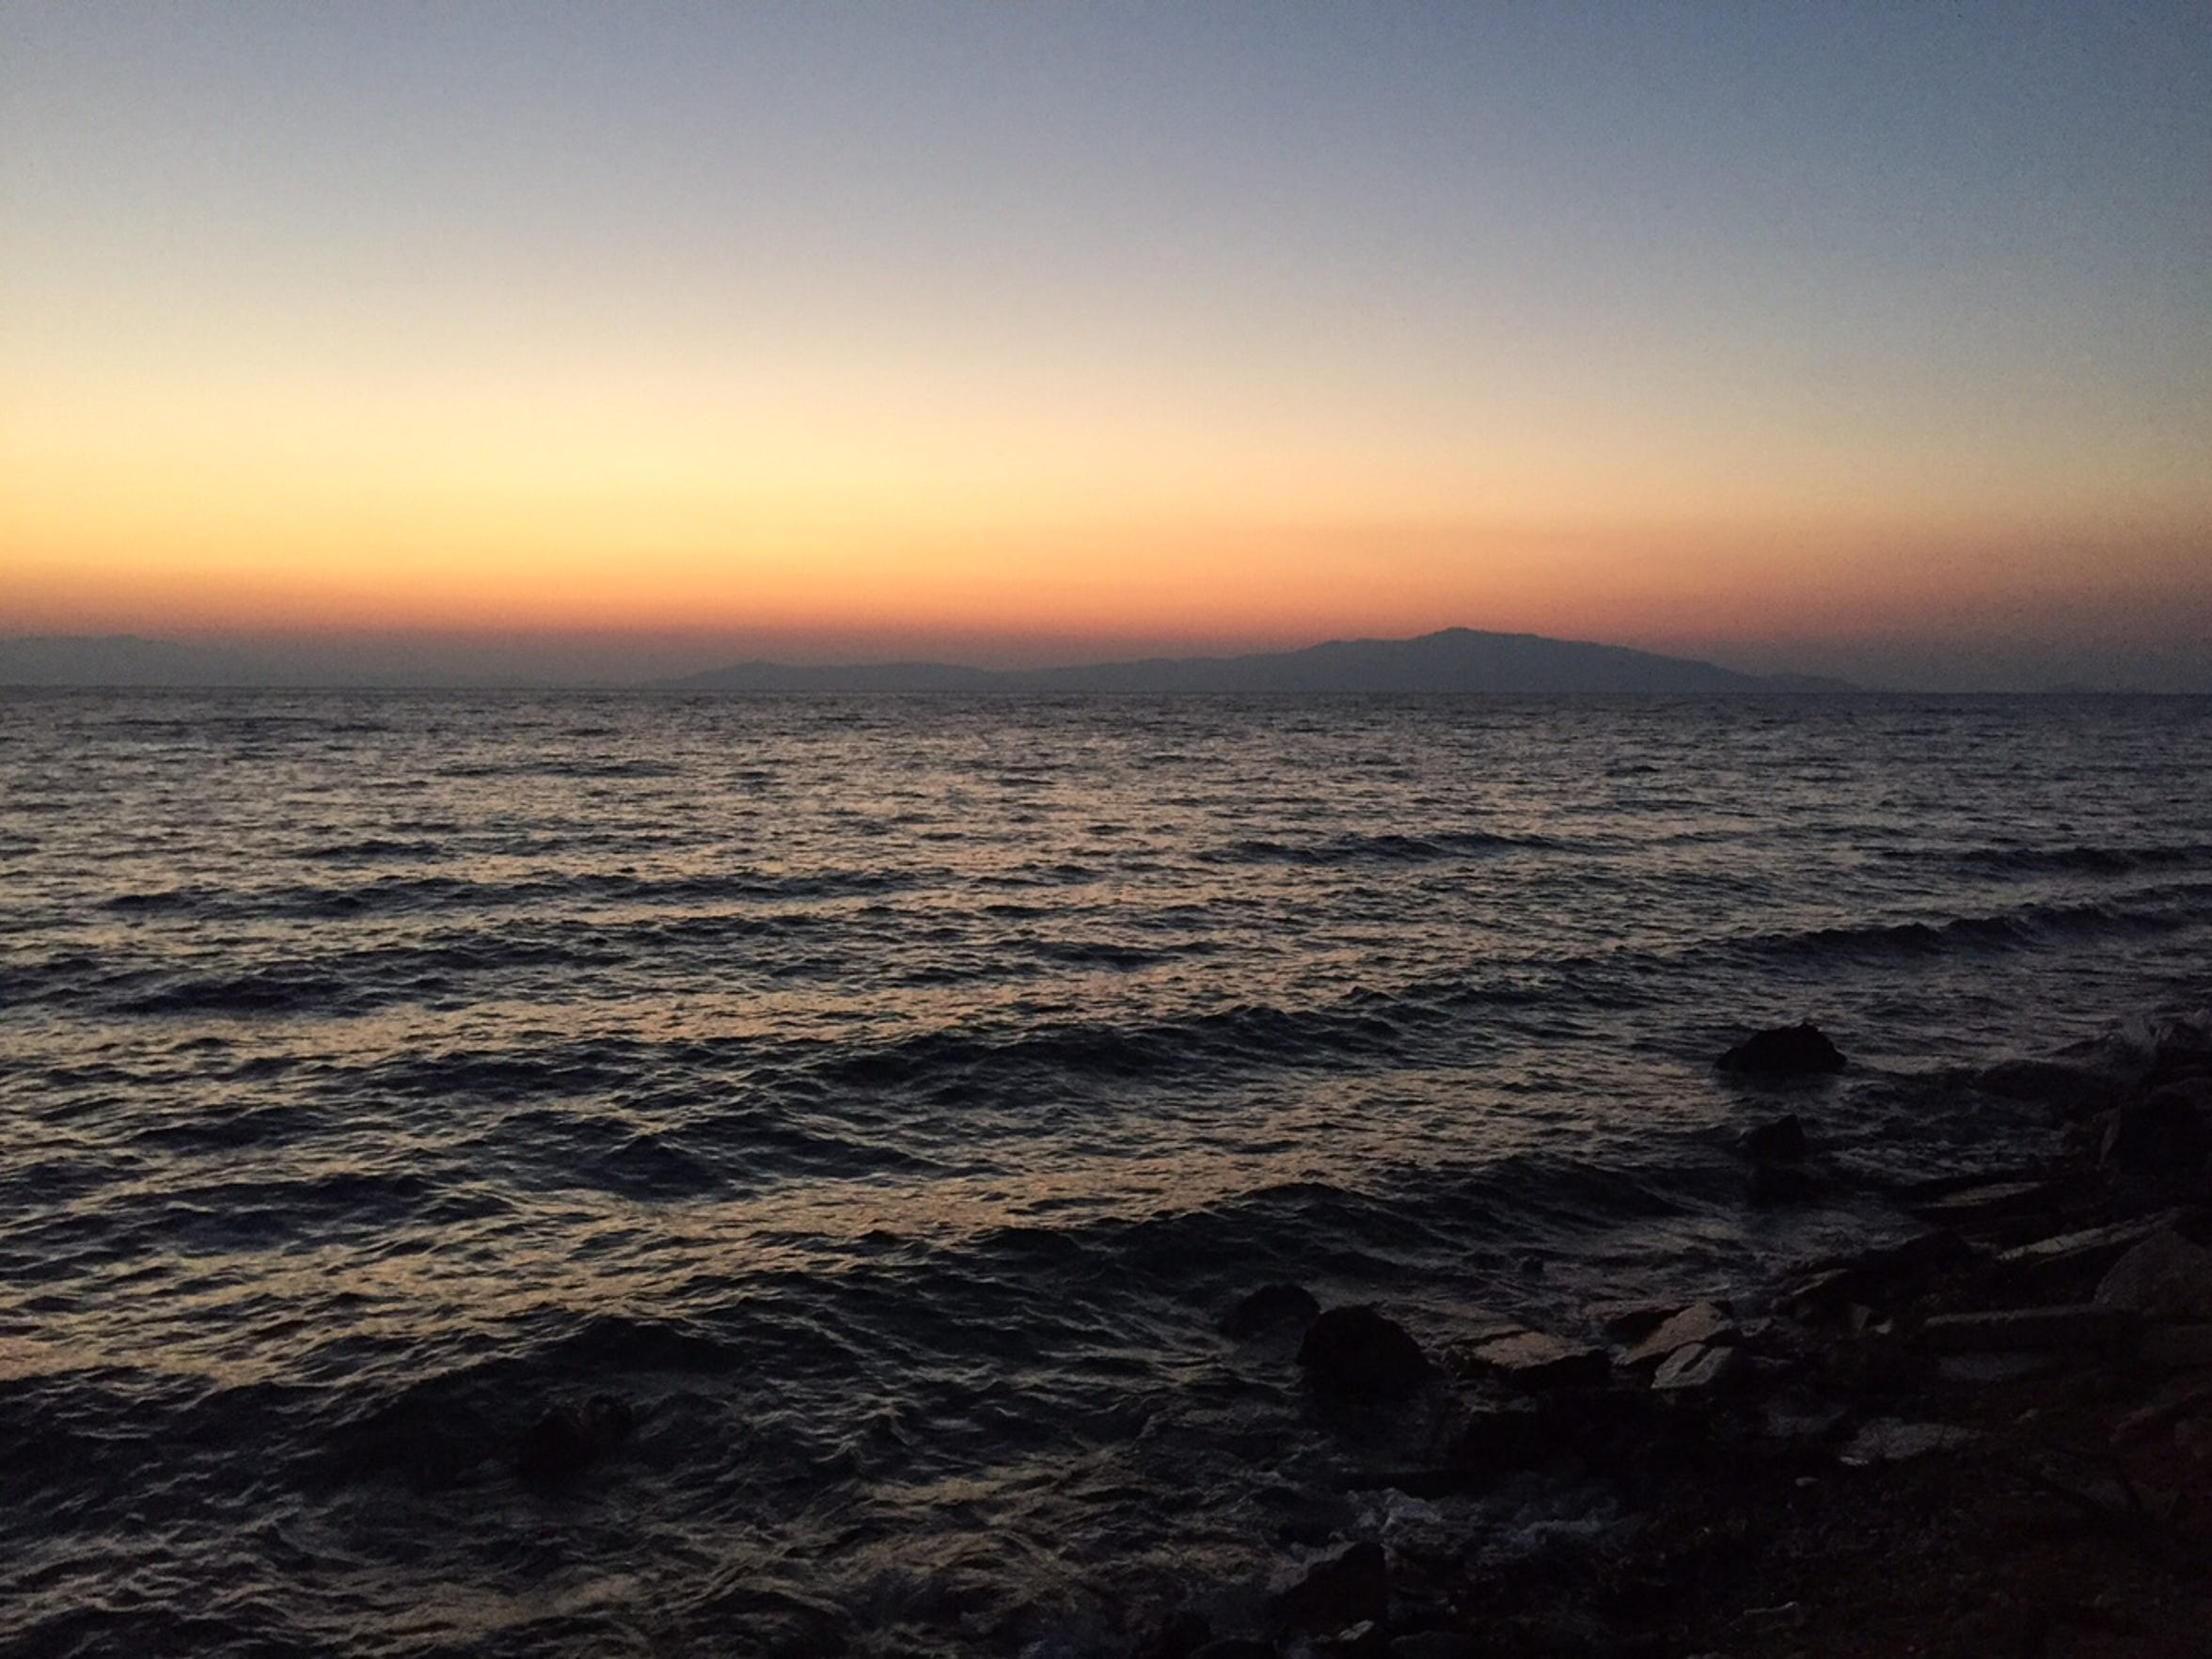 The Turkish mainland is visible from Lesbos, Greece, as the sun rises on Sept. 19, 2015.